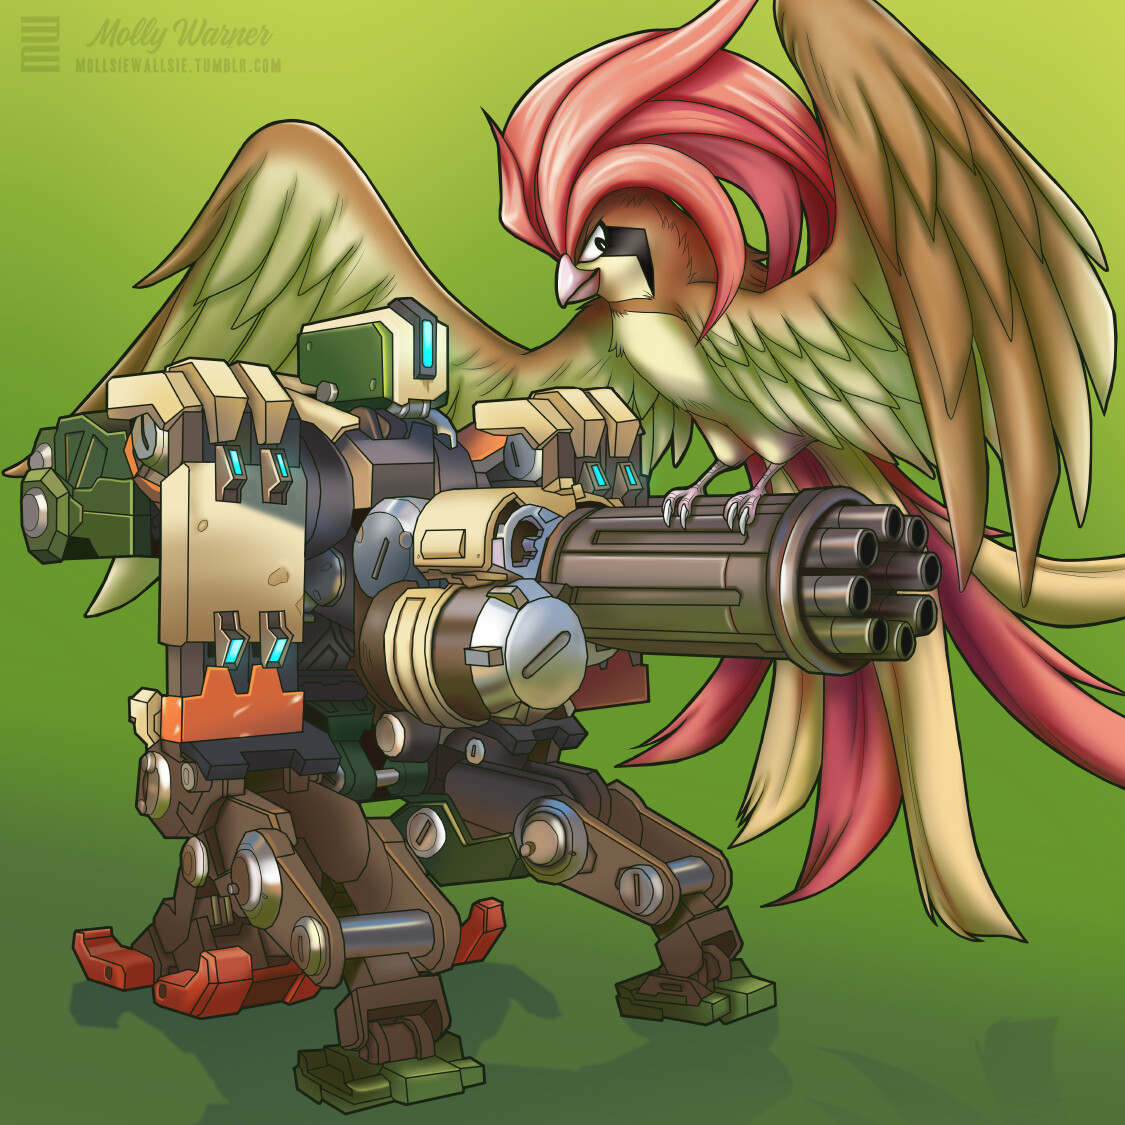 Molly warner bastion pidgeot